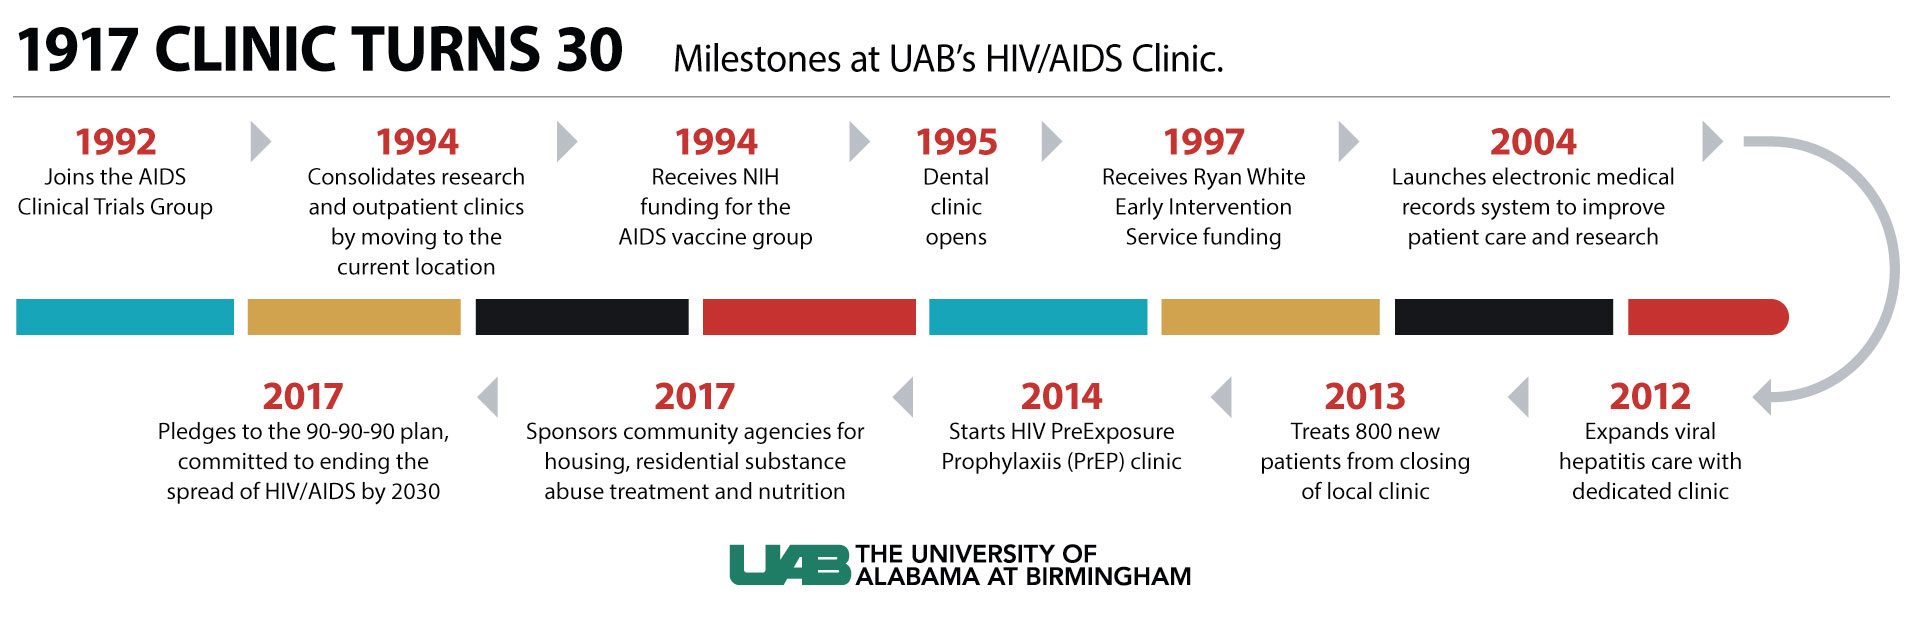 UAB - News - The past and present of HIV: three decades of care at UAB